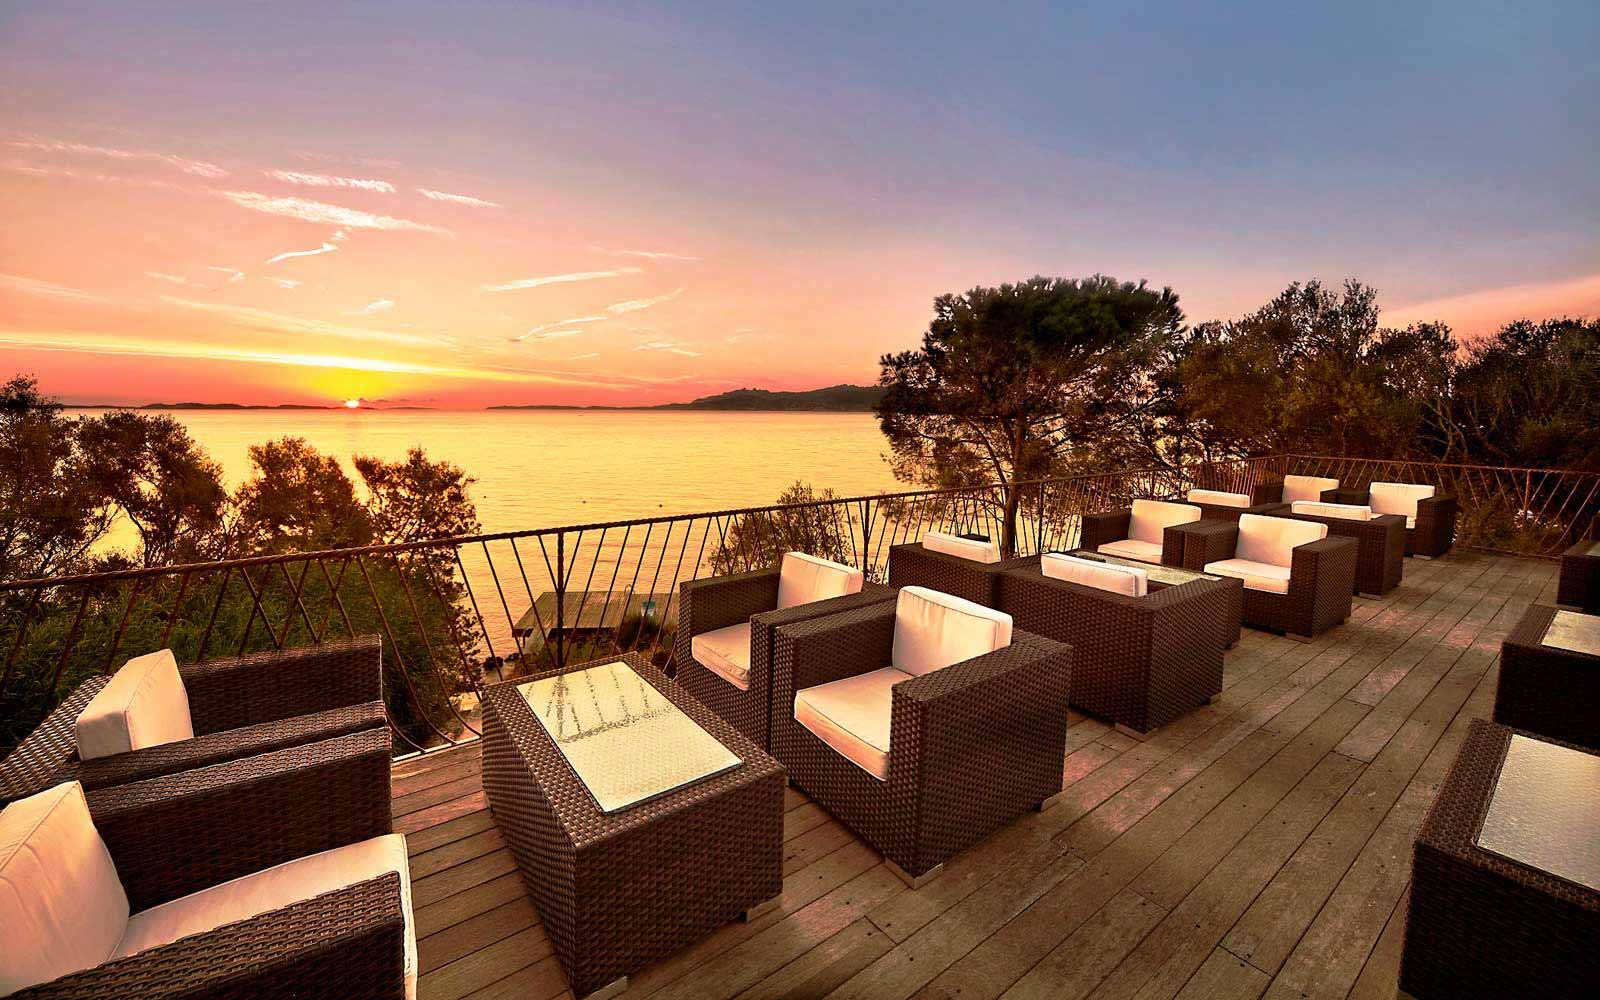 Terrace bar at Hotel Capo D'Orso Thalasso & Spa